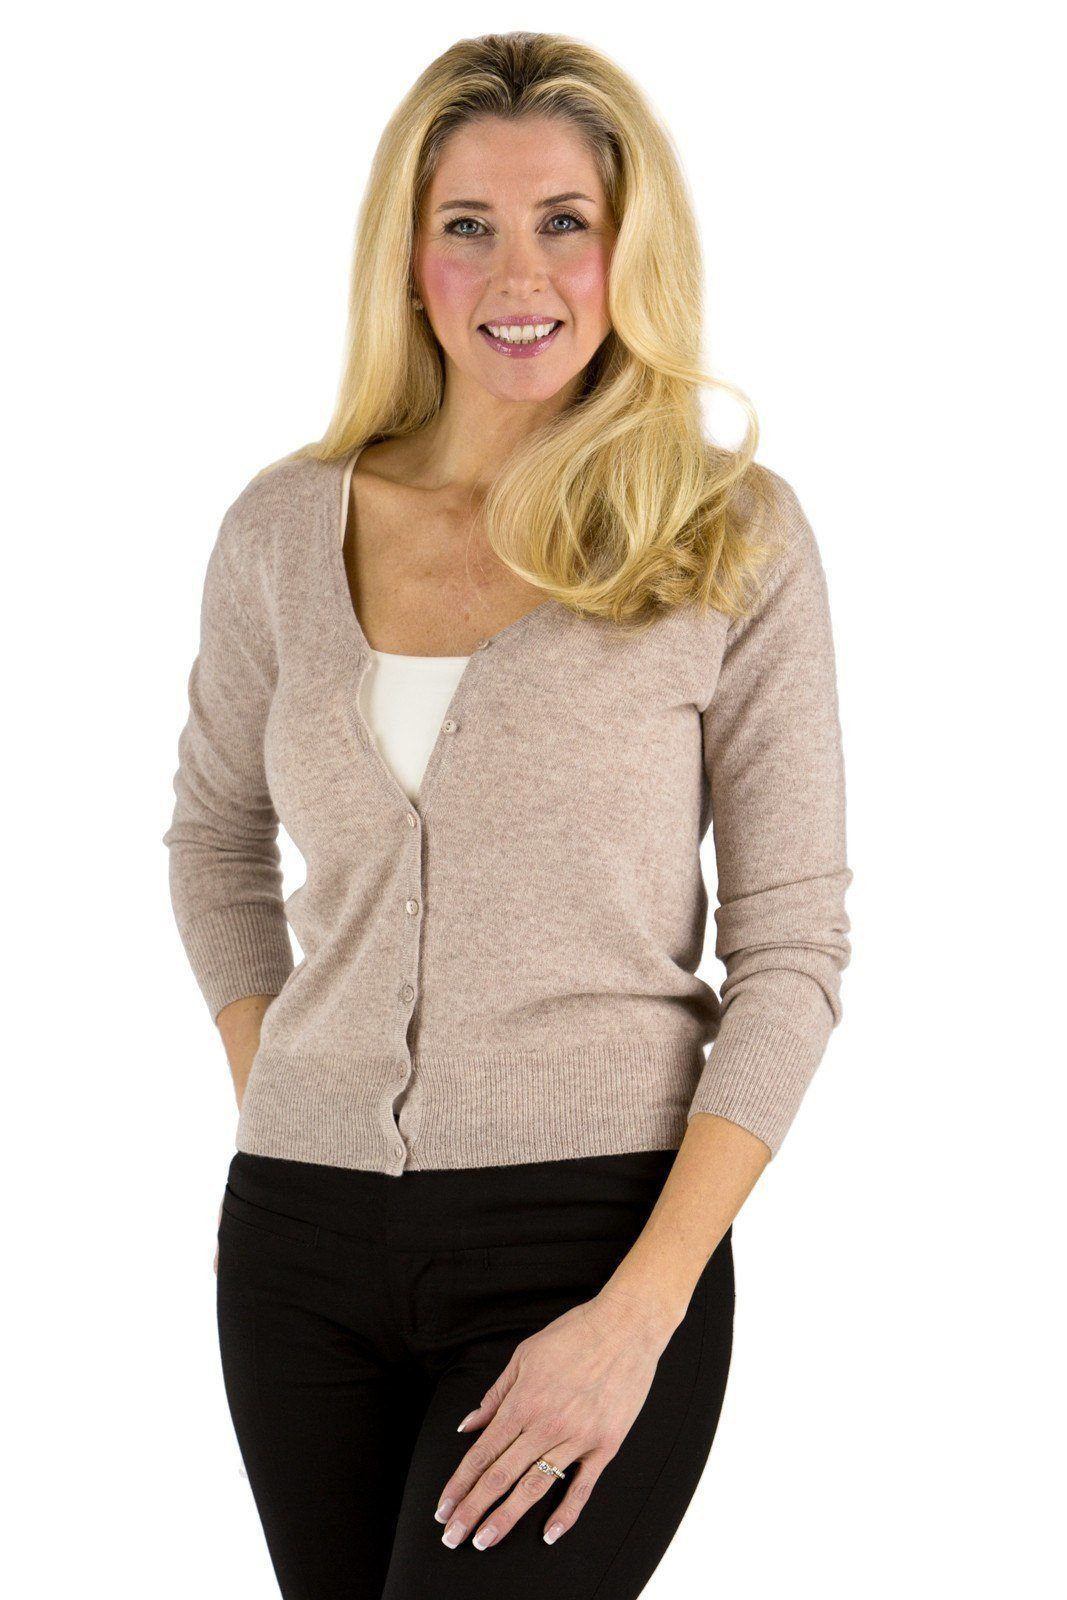 Women's 100% Cashmere Cardigan Sweater | Products | Pinterest ...